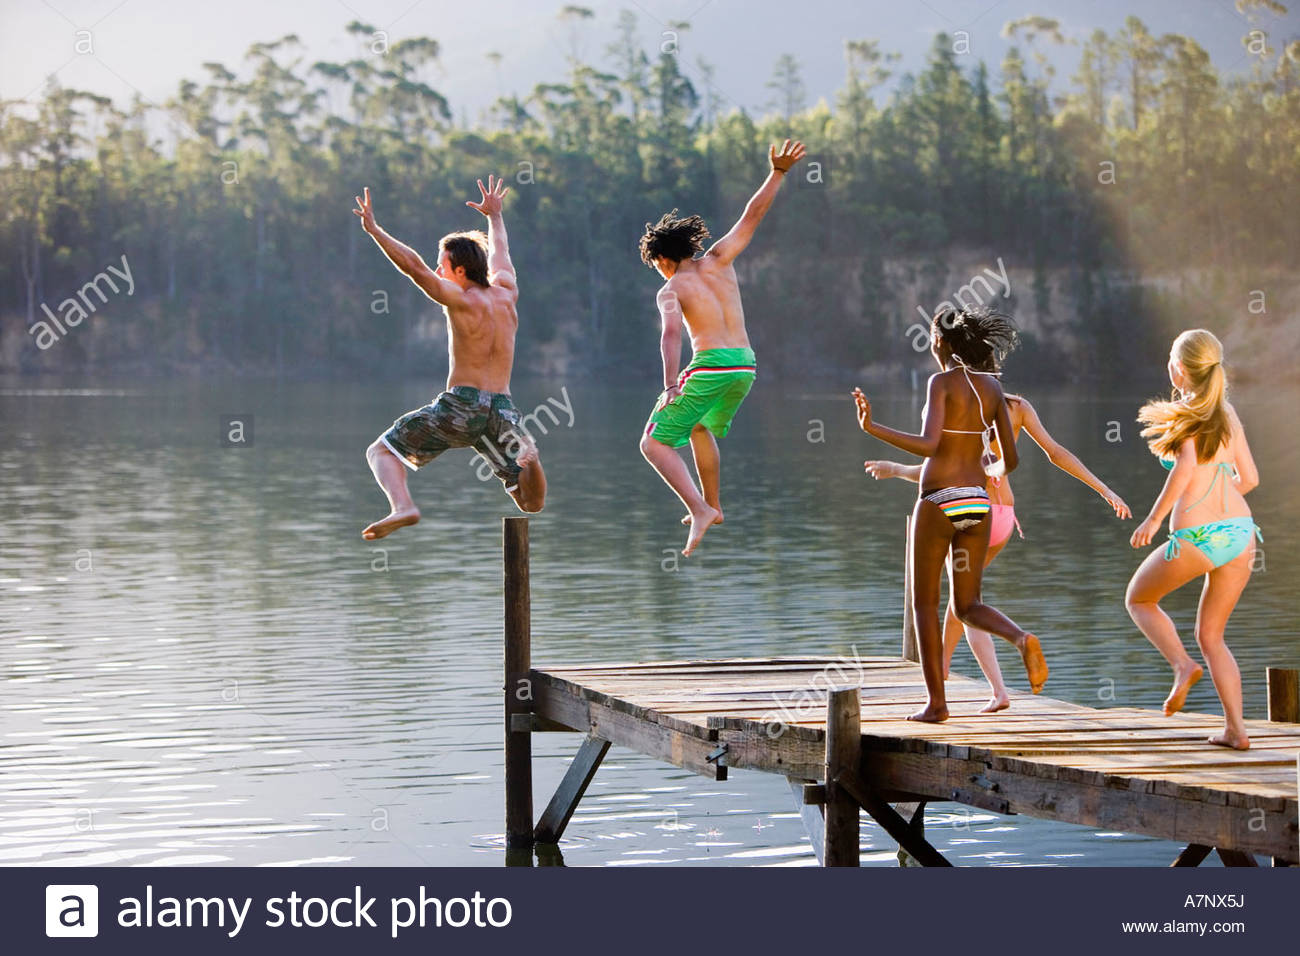 Five young adults in swimwear jumping from jetty into lake rear view - Stock Image